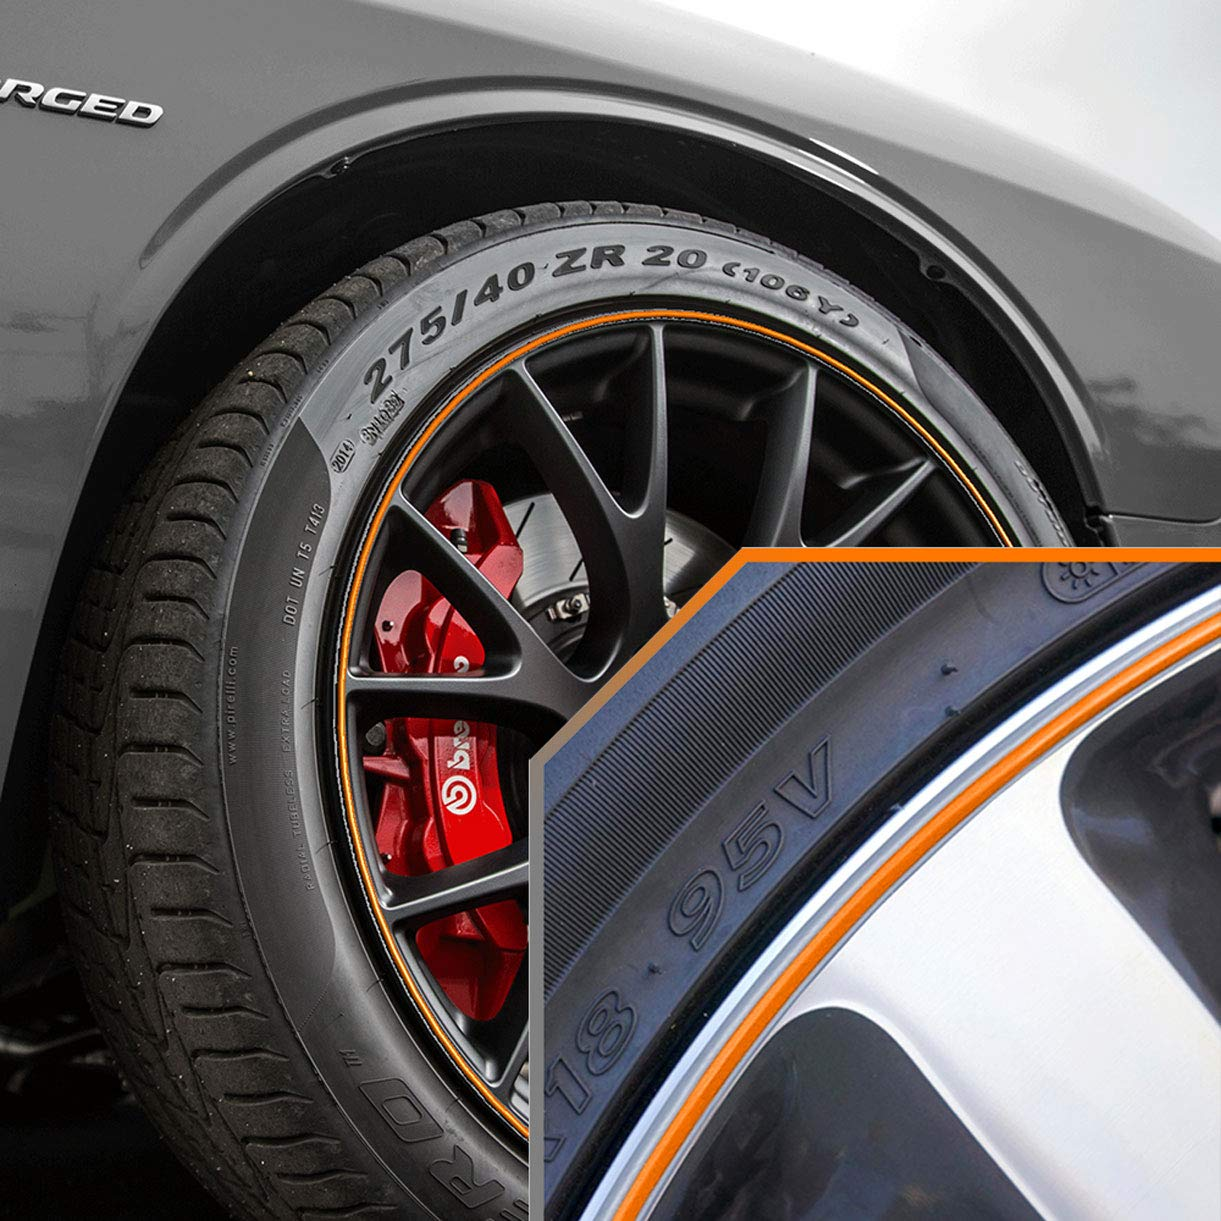 Upgrade Your Auto Wheel Bands Orange in Silver Pinstripe Rim Trim for Dodge Challenger (Full Kit) by Upgrade Your Auto